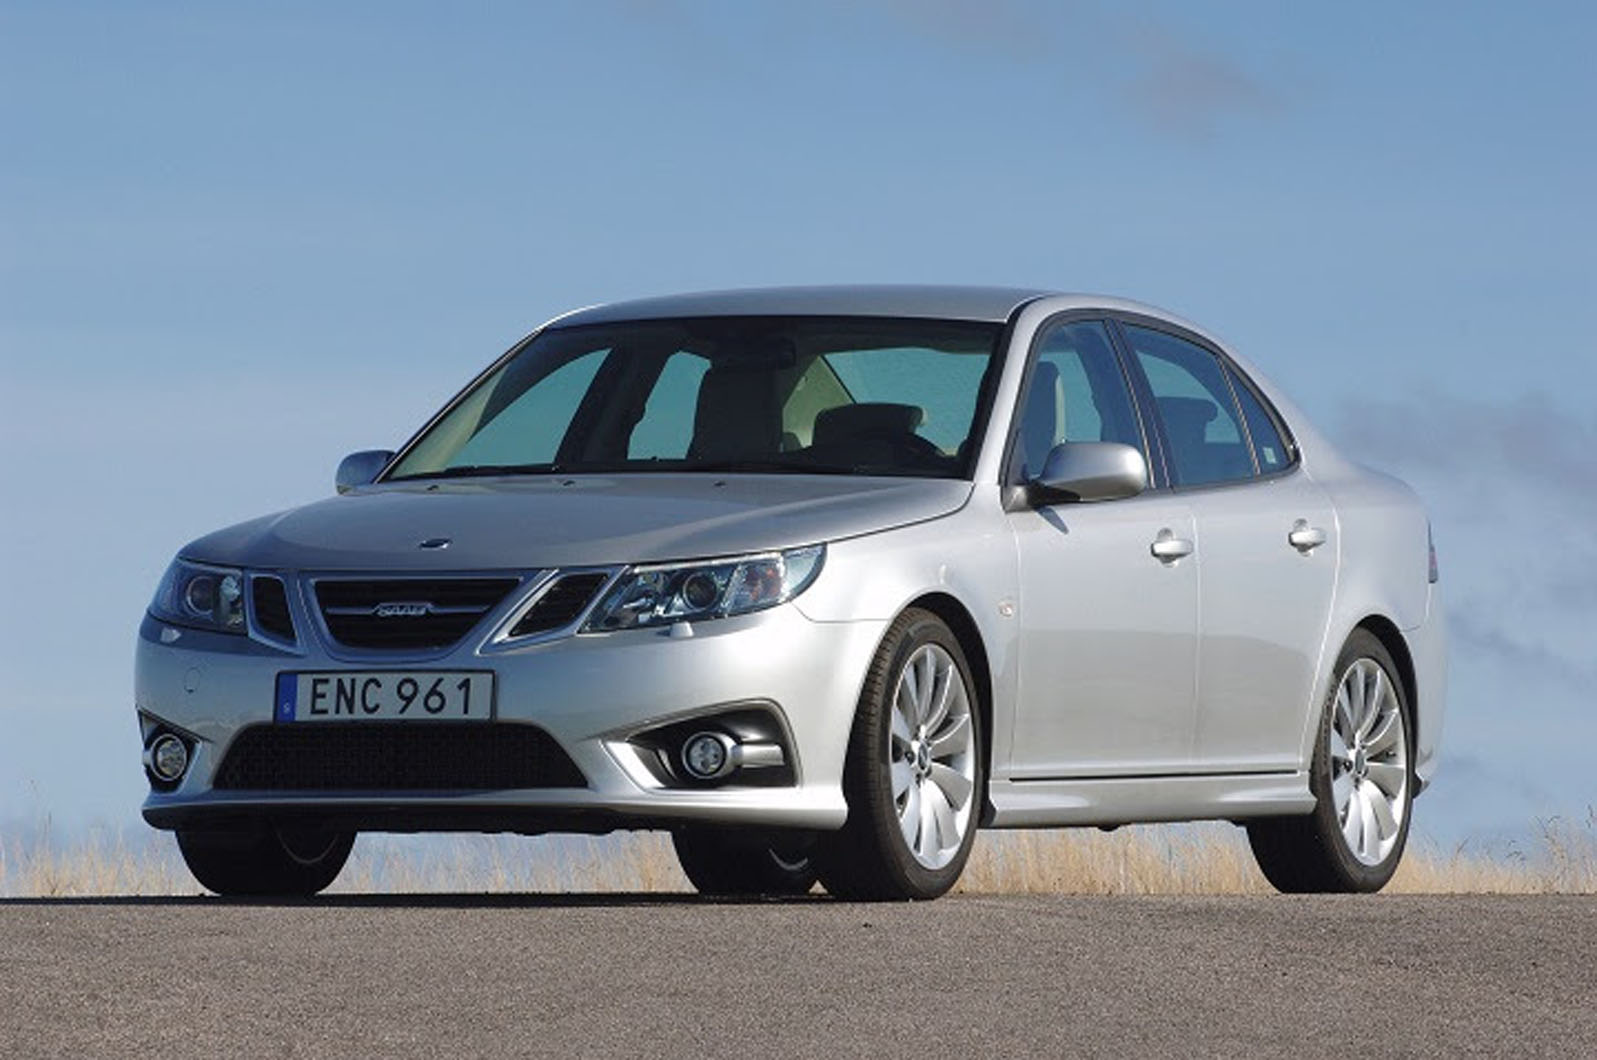 Swedish Ev Firm Nevs To Sell Final New Saab 9 3 This Month Autocar